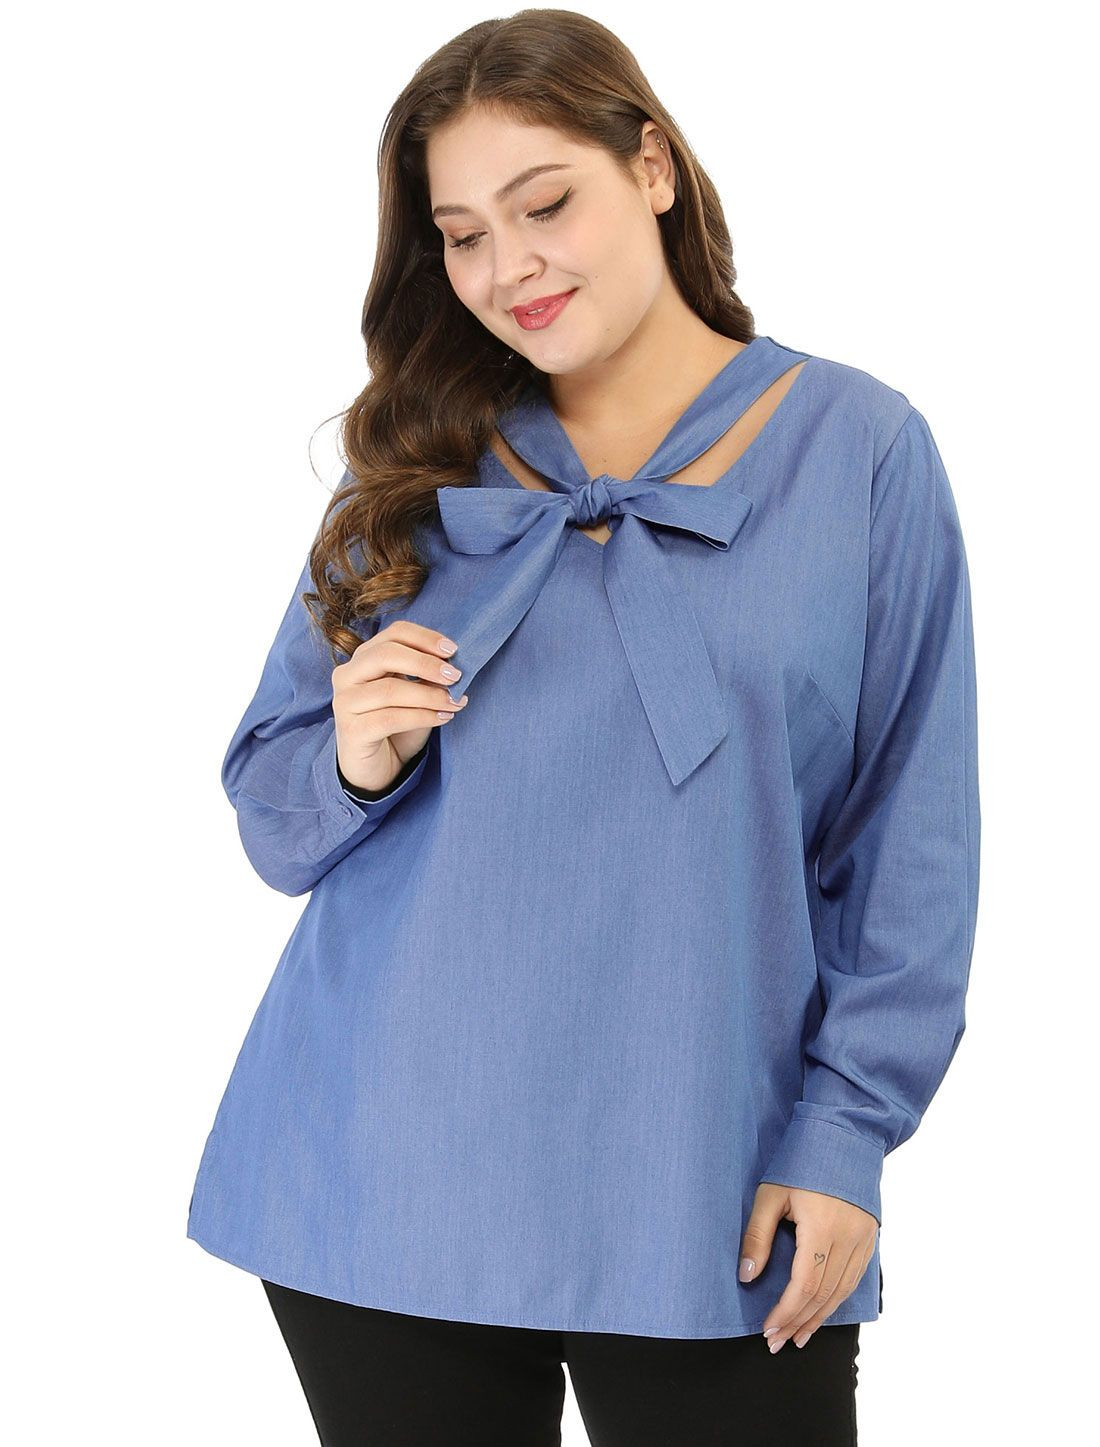 Women\'s Plus Size Tie Neck Long Sleeves Choker Chambray Blouse Shirts Tops